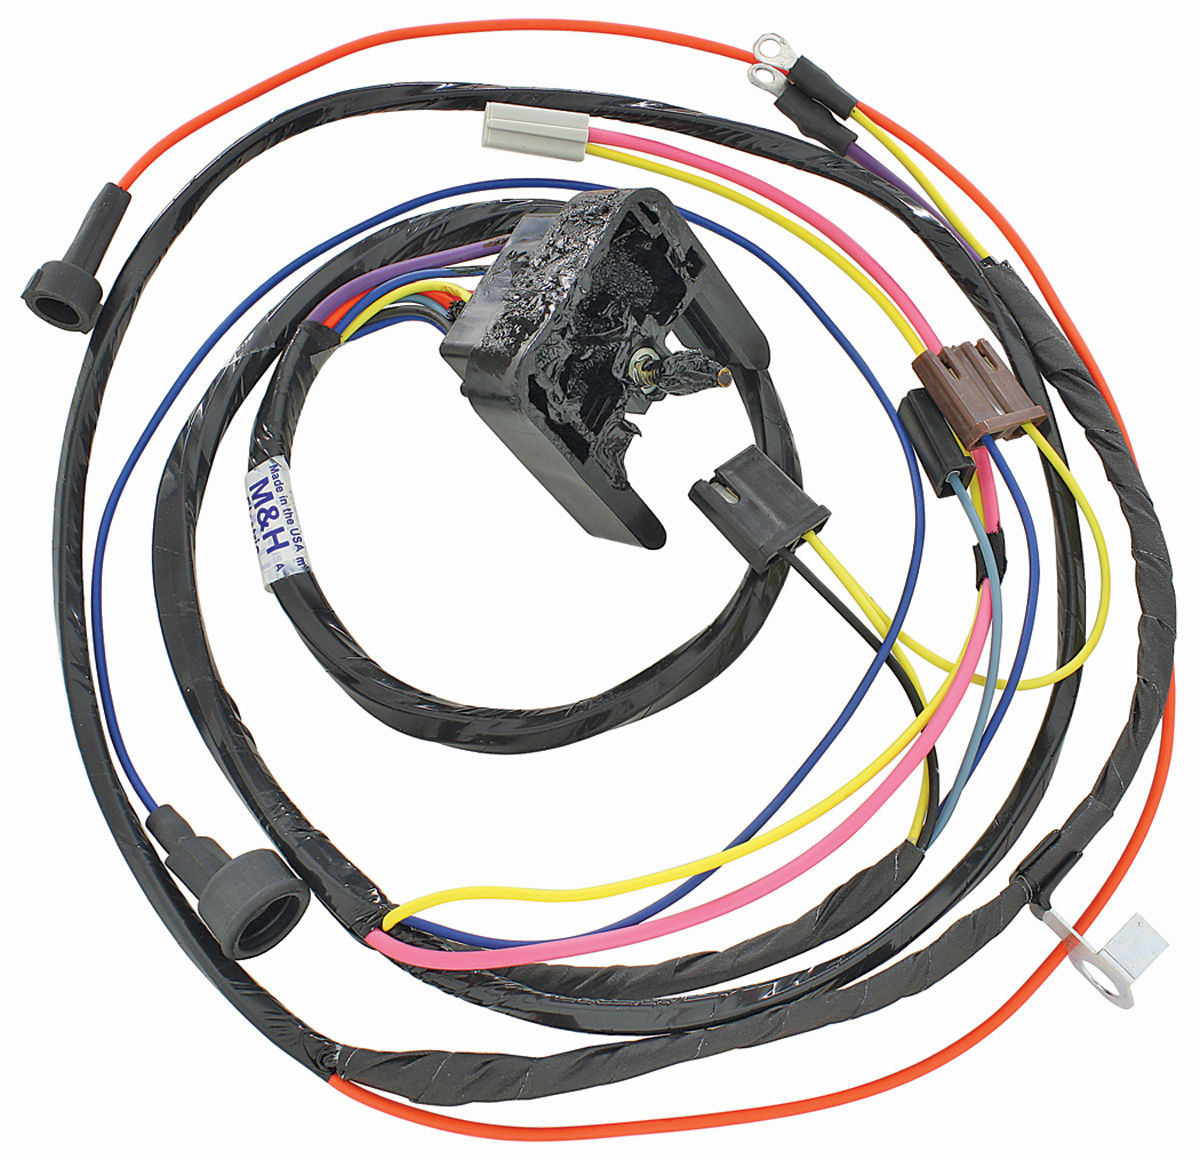 38947 lrg?v=102520130818 m&h 1968 69 chevelle engine harness 396 hei w warning lights 69 chevelle wiring diagram at crackthecode.co